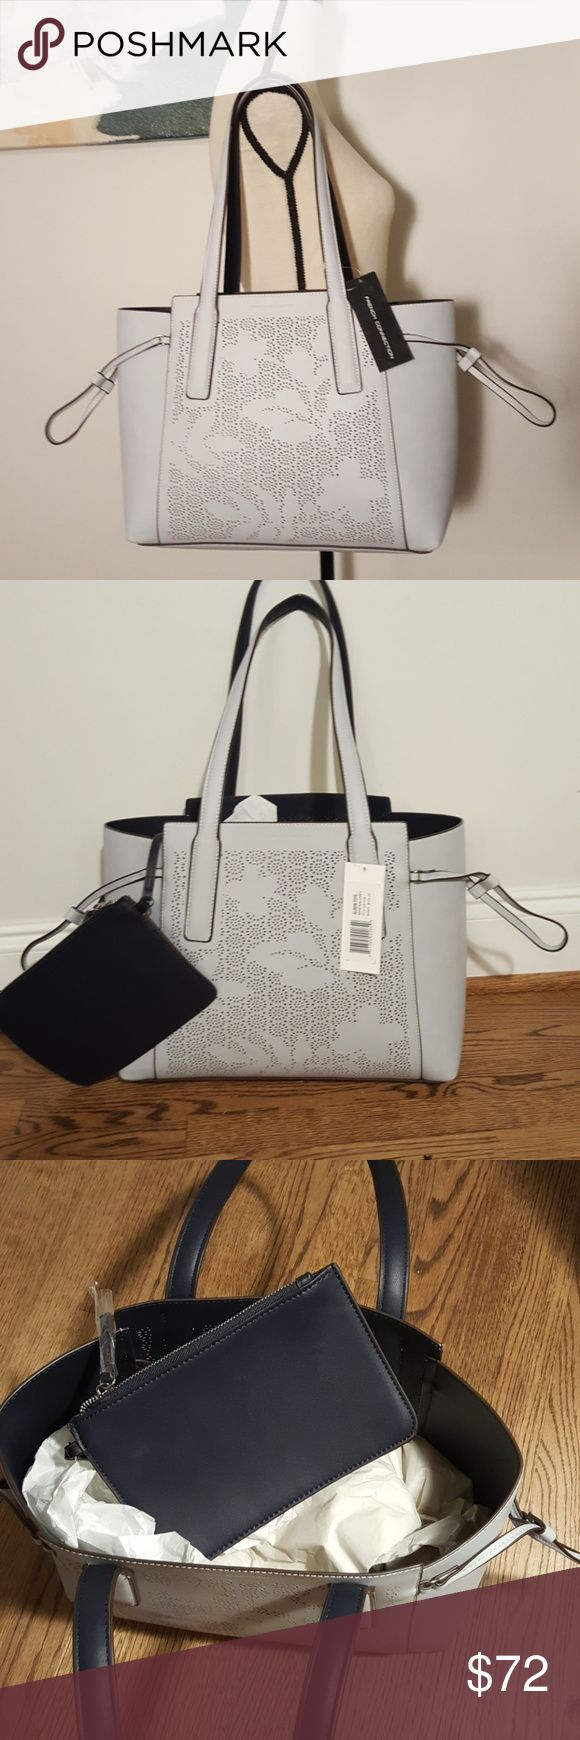 "French Connection Alison Tote - Mineral Grey Very Classy French Connection ""Alison"" Tote in Mineral Grey. Comes with attached zipper pouch that's is about 5.75""x8.5"". Bag measures 14""x 5"" at bottom but expands out a bit at the top.  Sides can cinch closed. French Connection Bags Totes"